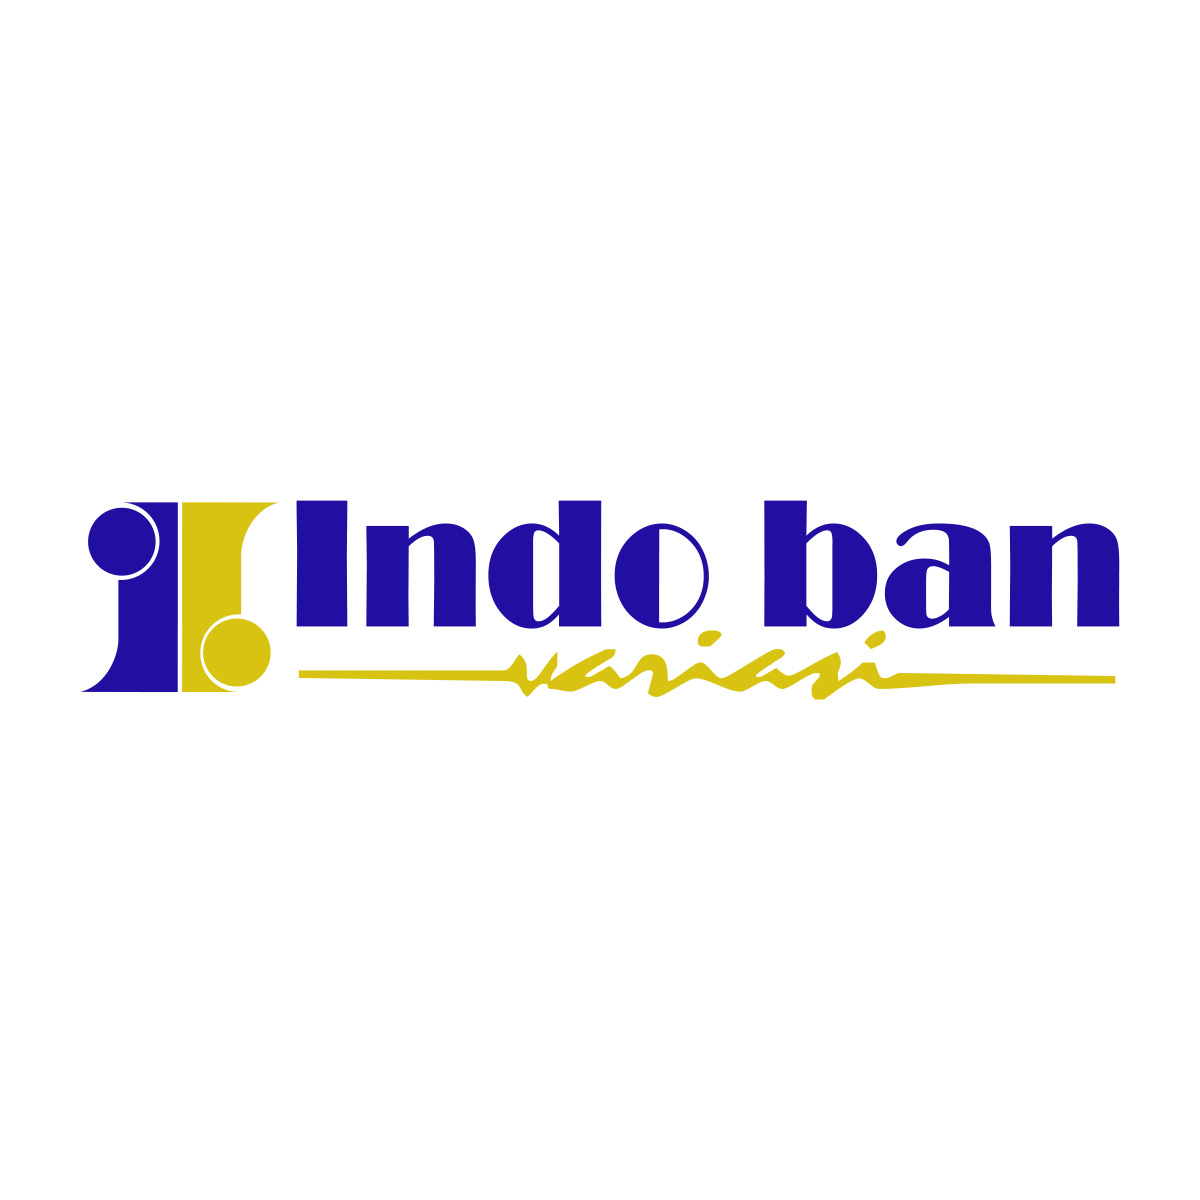 Indoban Variasi